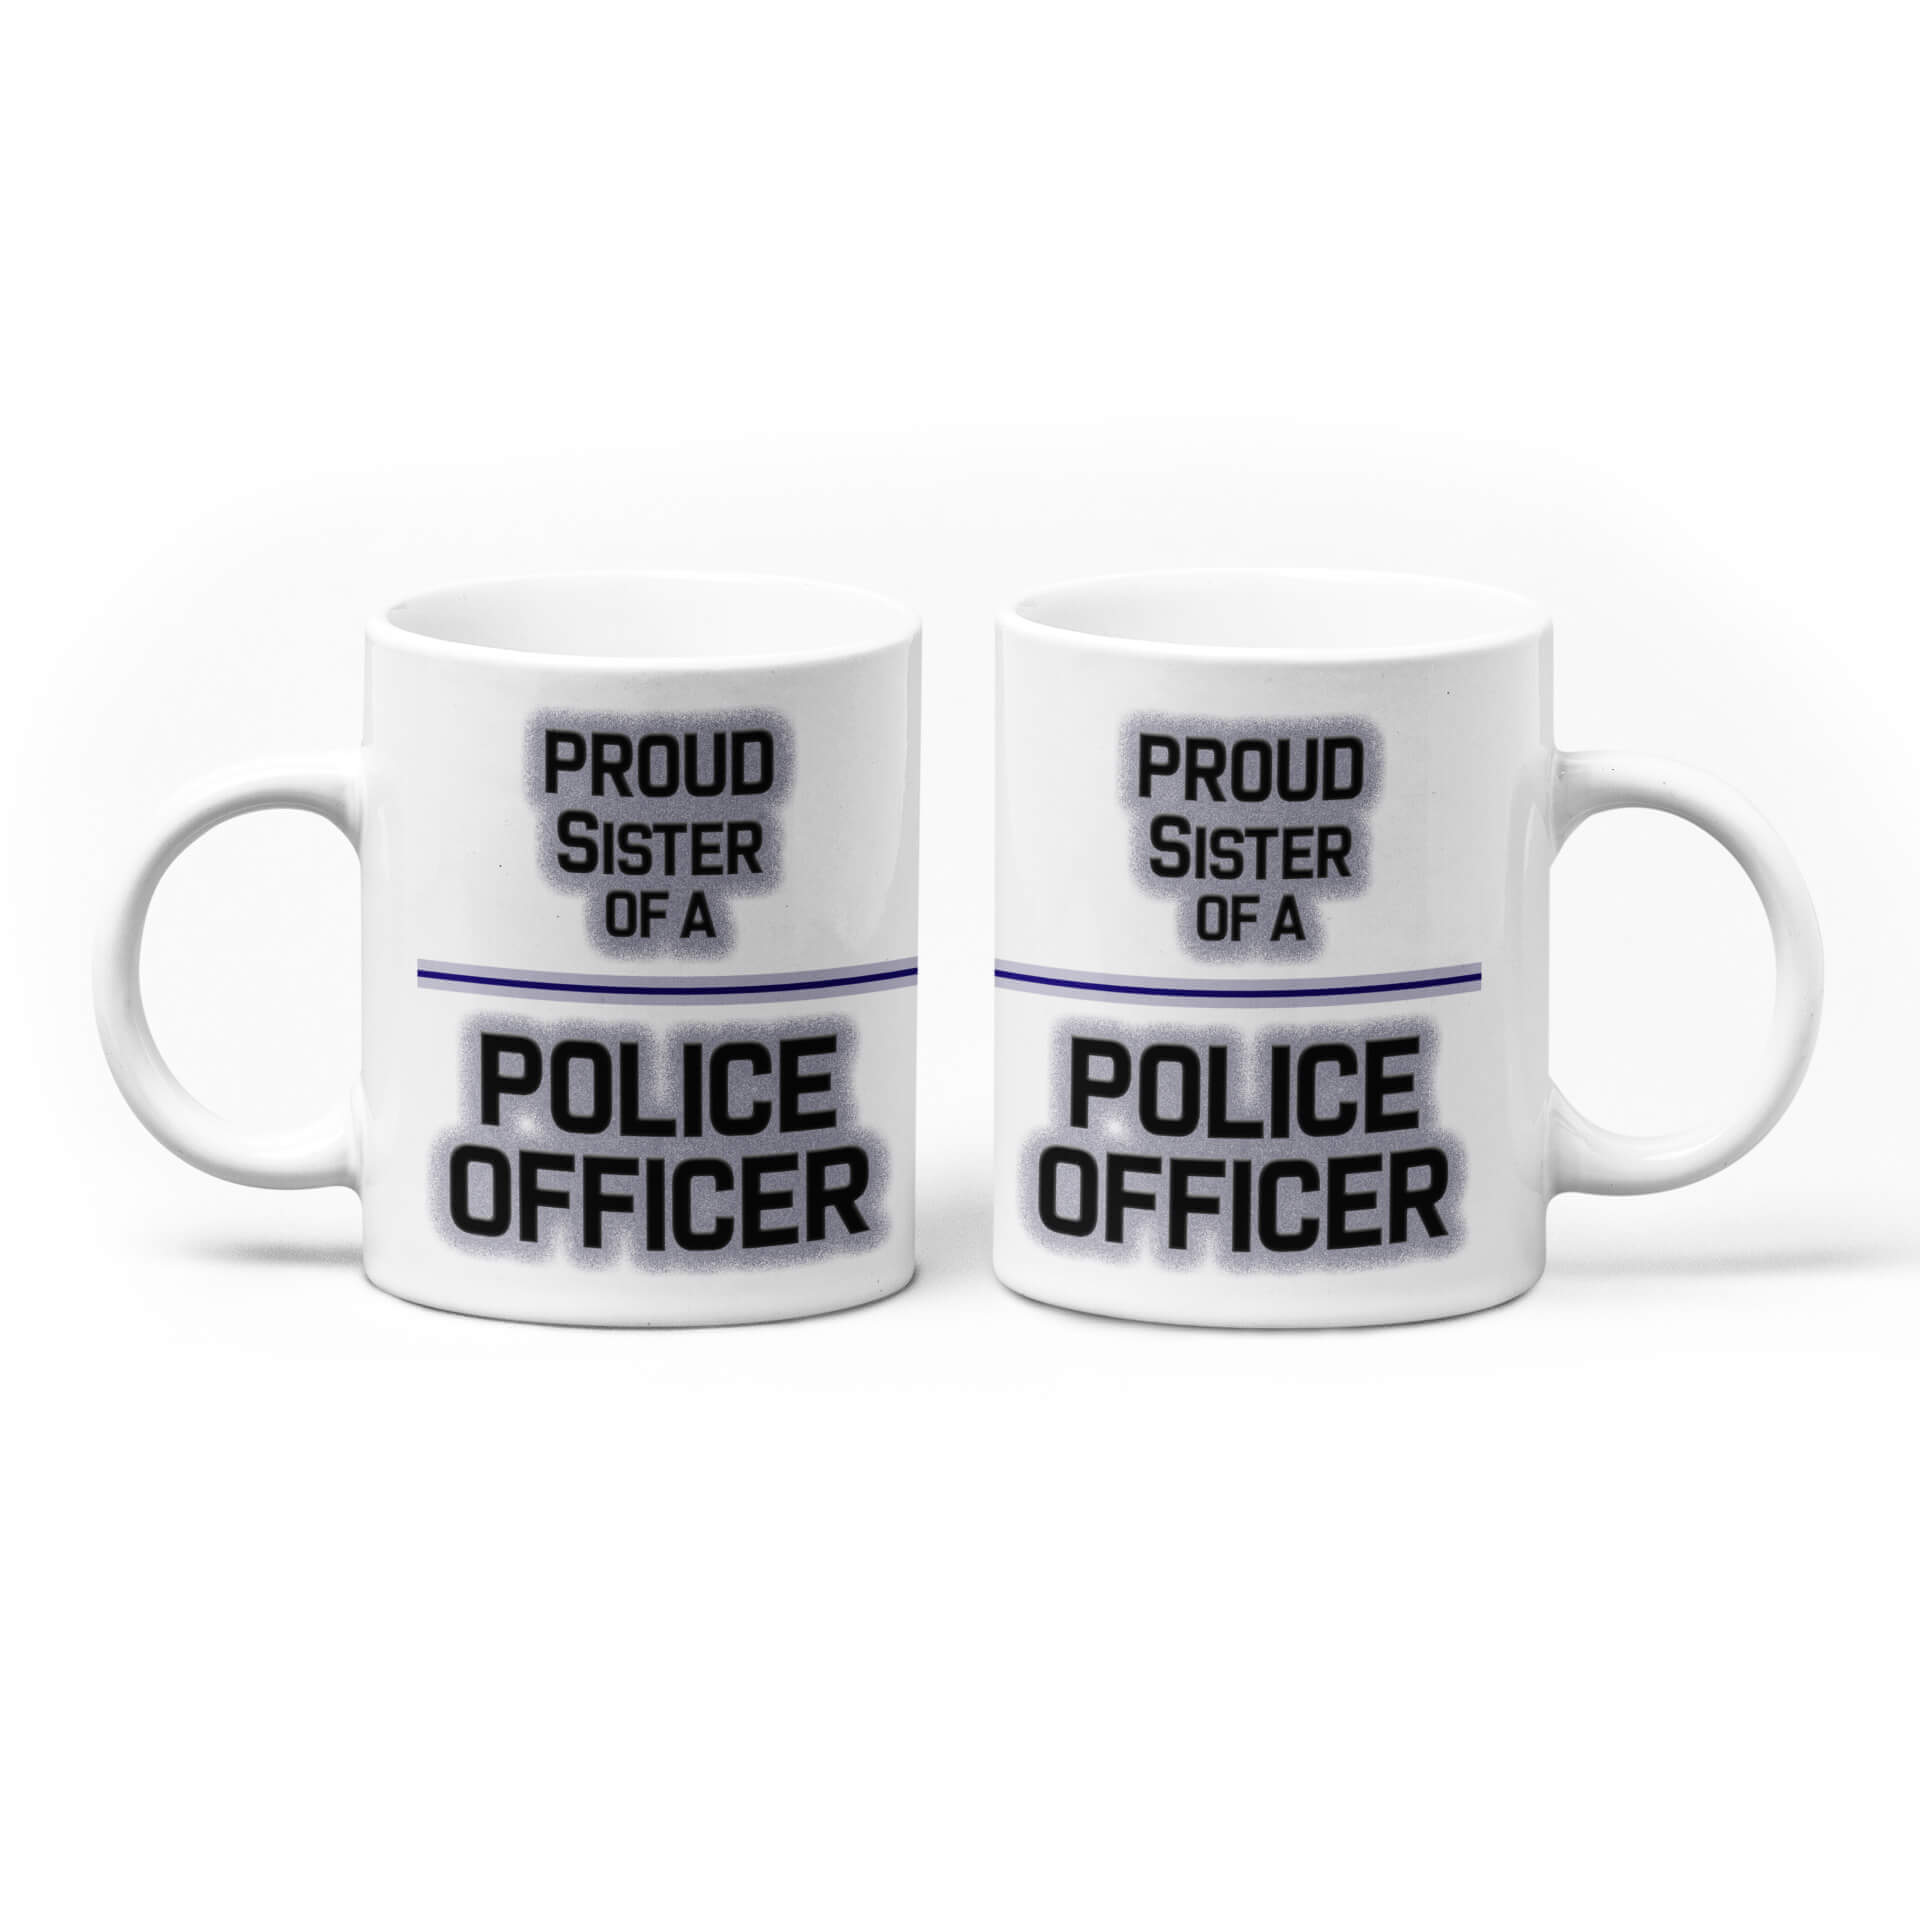 Proud Sister of a Police Officer Mug